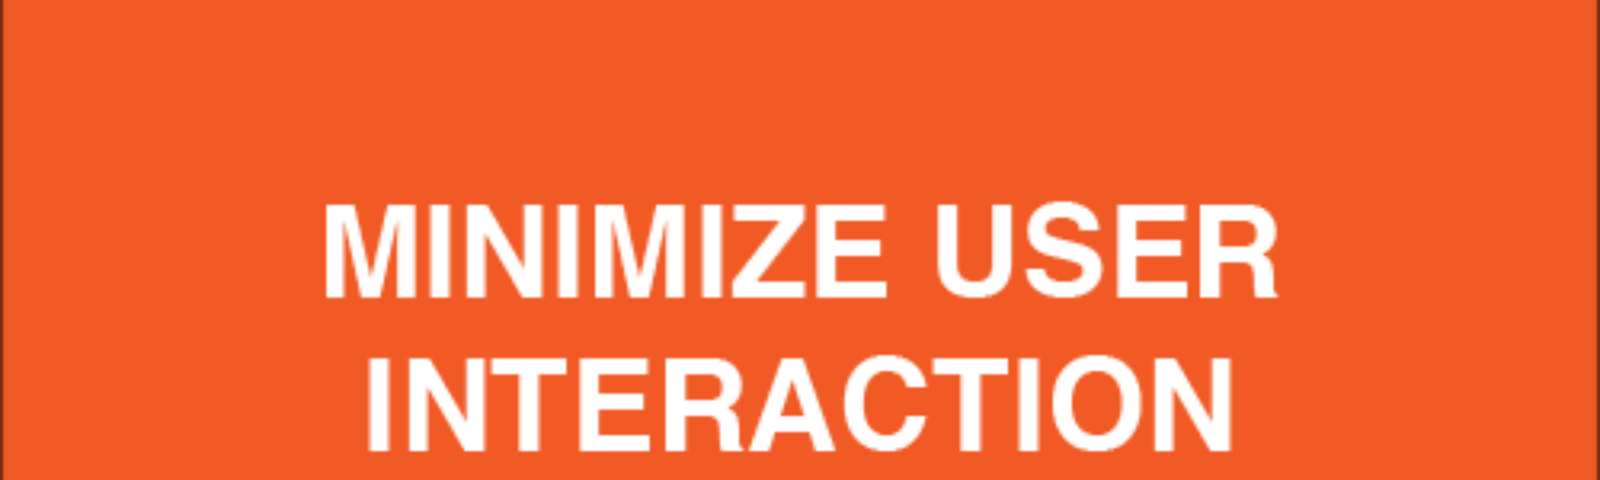 minimize user interaction